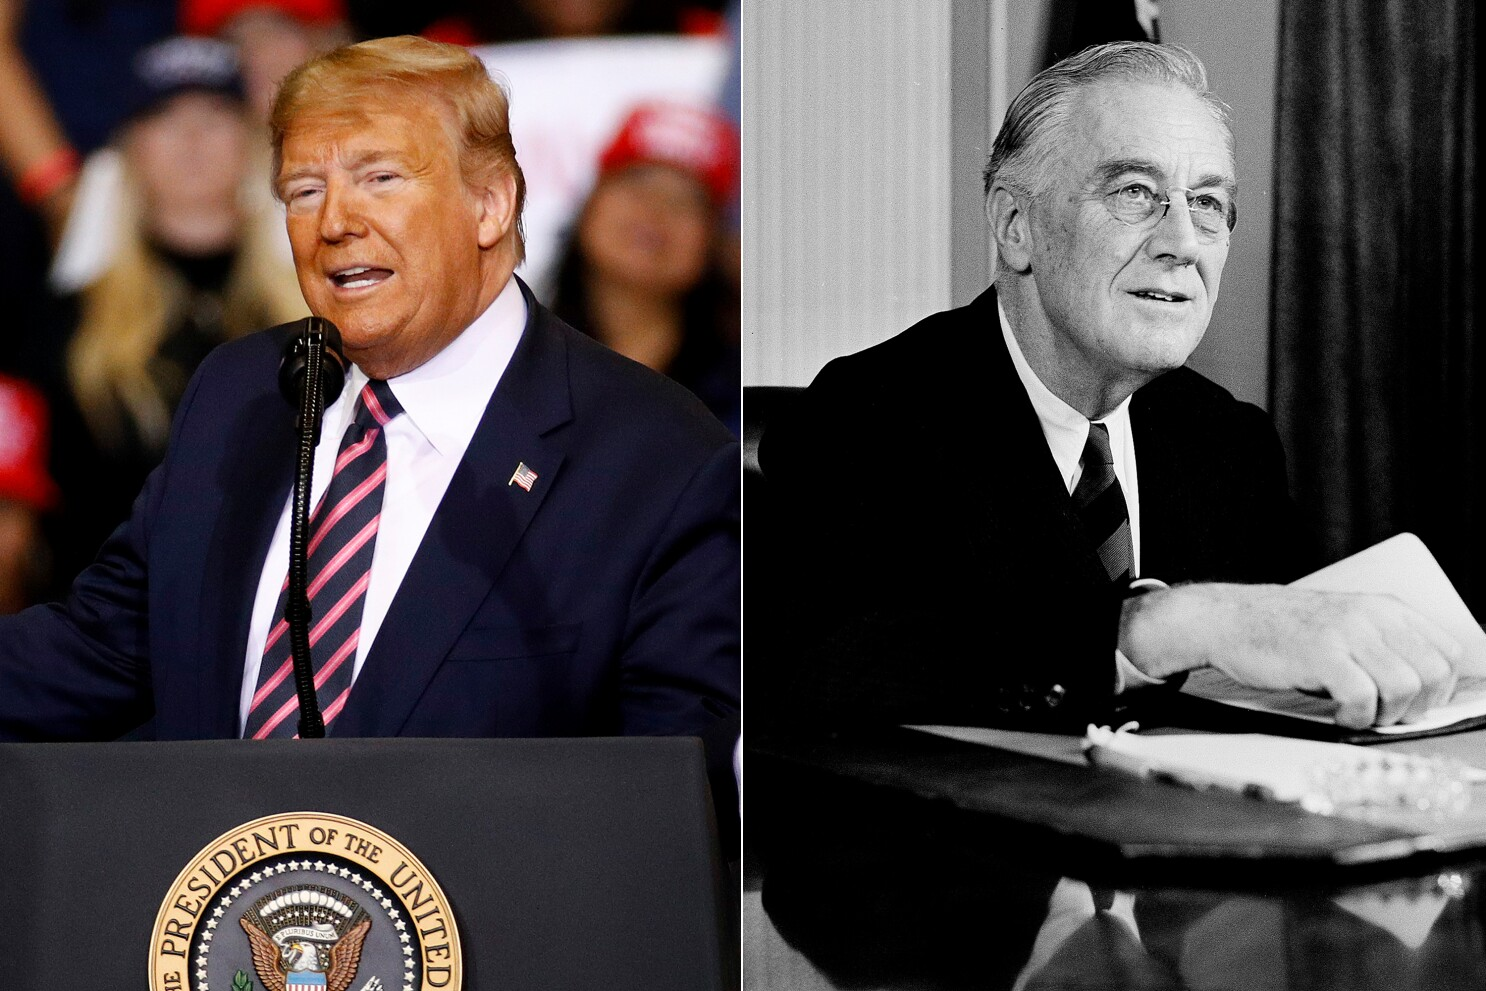 Trump FDR comparison, coronavirus versus Pearl Harbor - Los Angeles Times